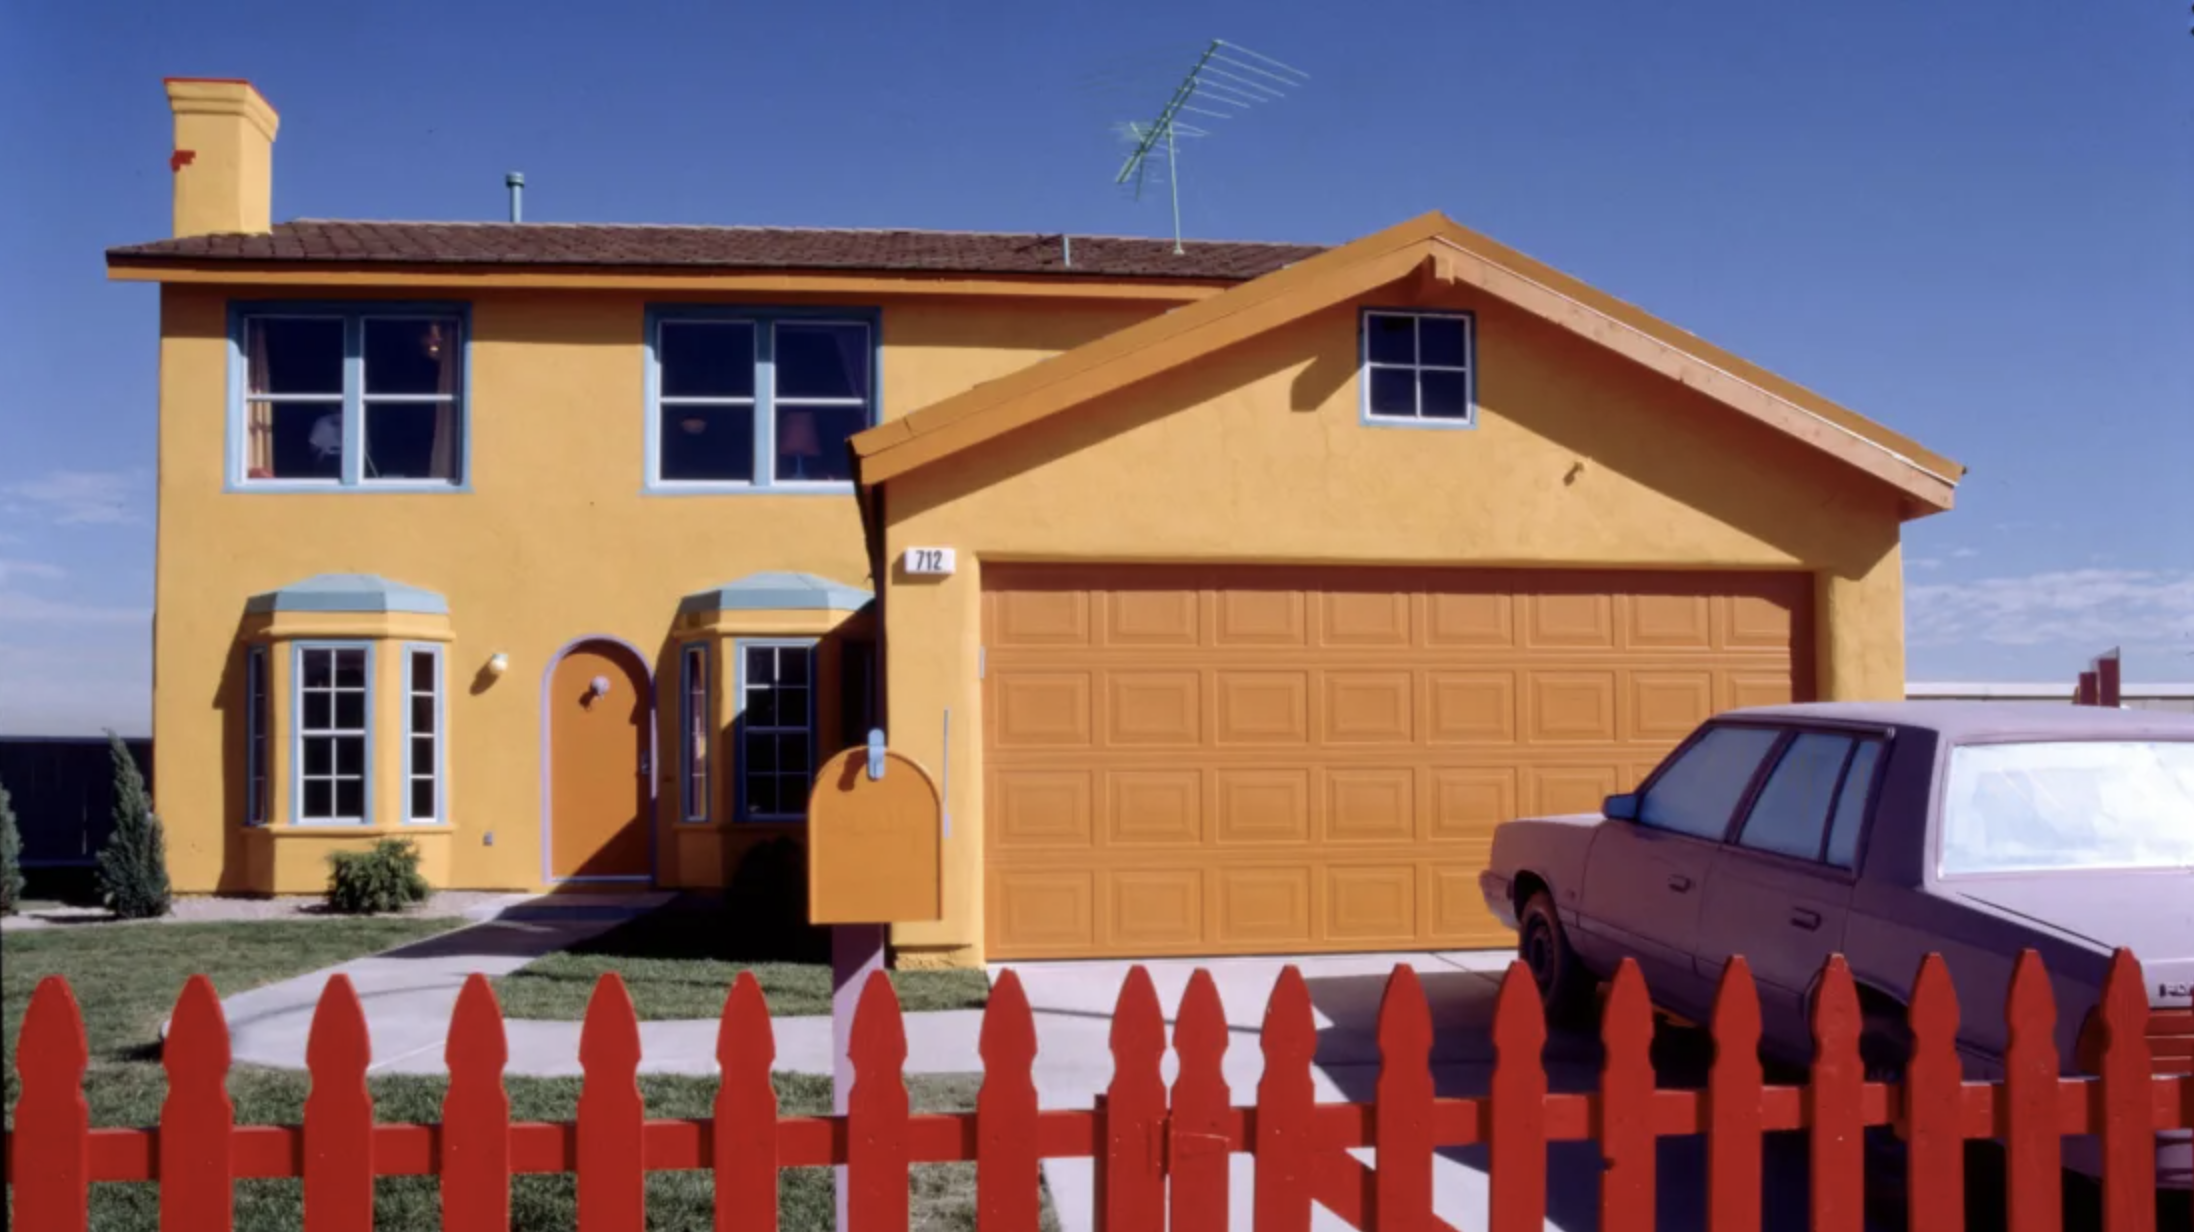 A replica of The Simpsons house